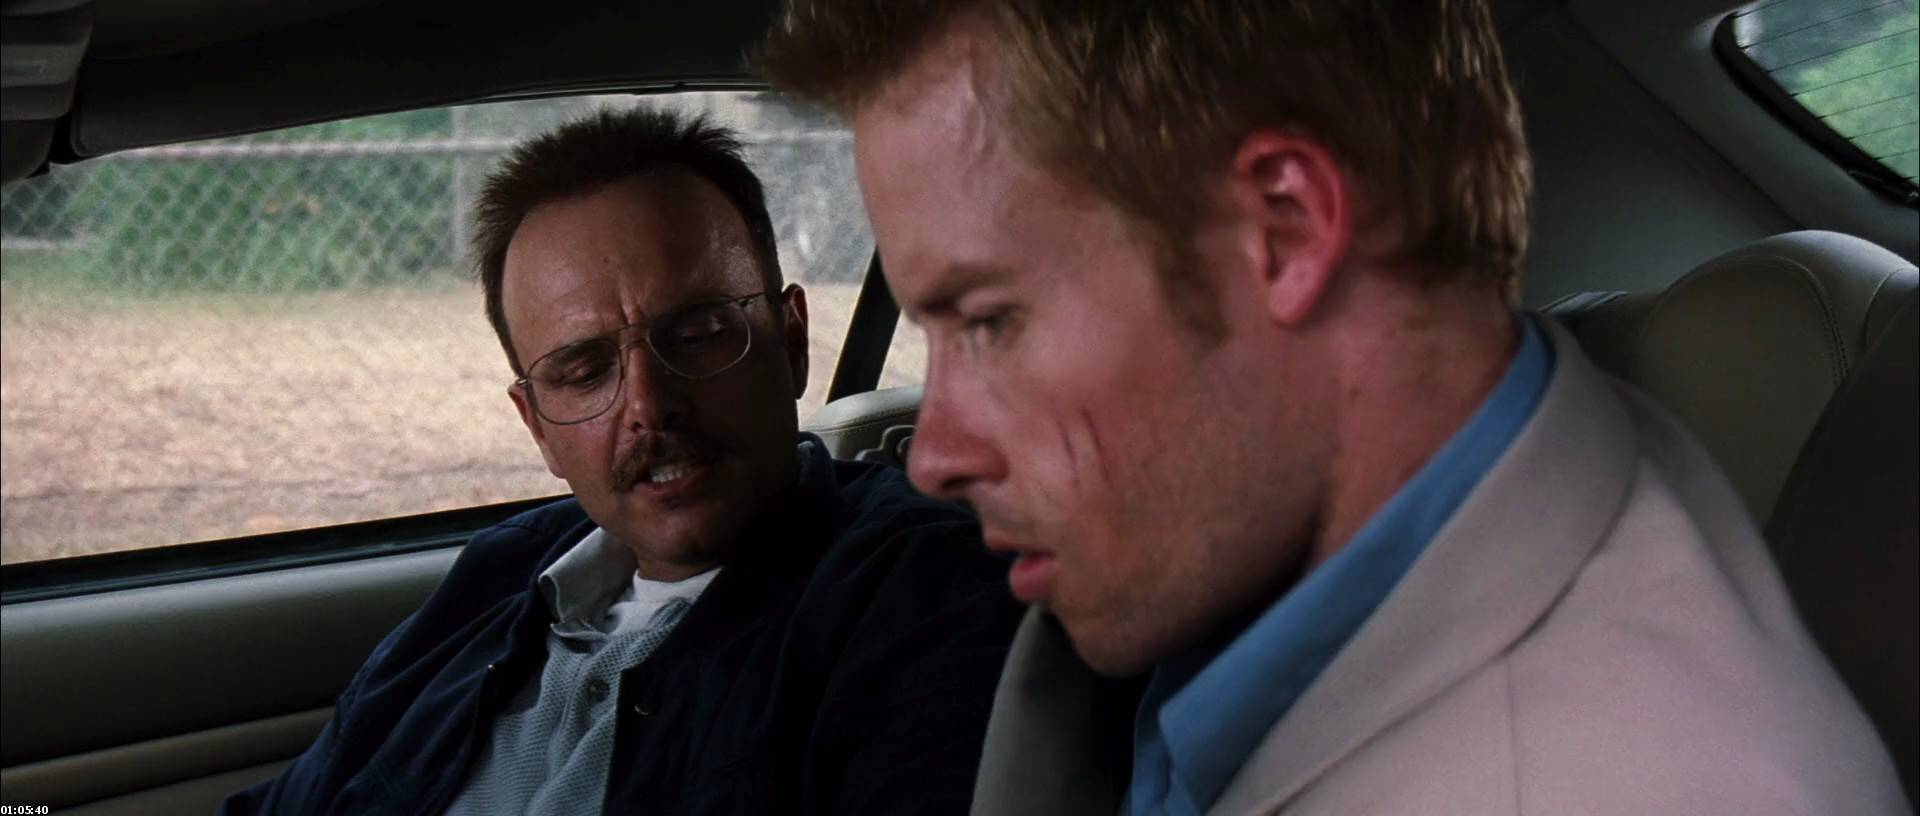 memento and memory processes Directed by christopher nolan with guy pearce, carrie-anne moss, joe pantoliano, mark boone junior a man juggles searching for his wife's murderer and keeping his short-term memory loss from being an obstacle.